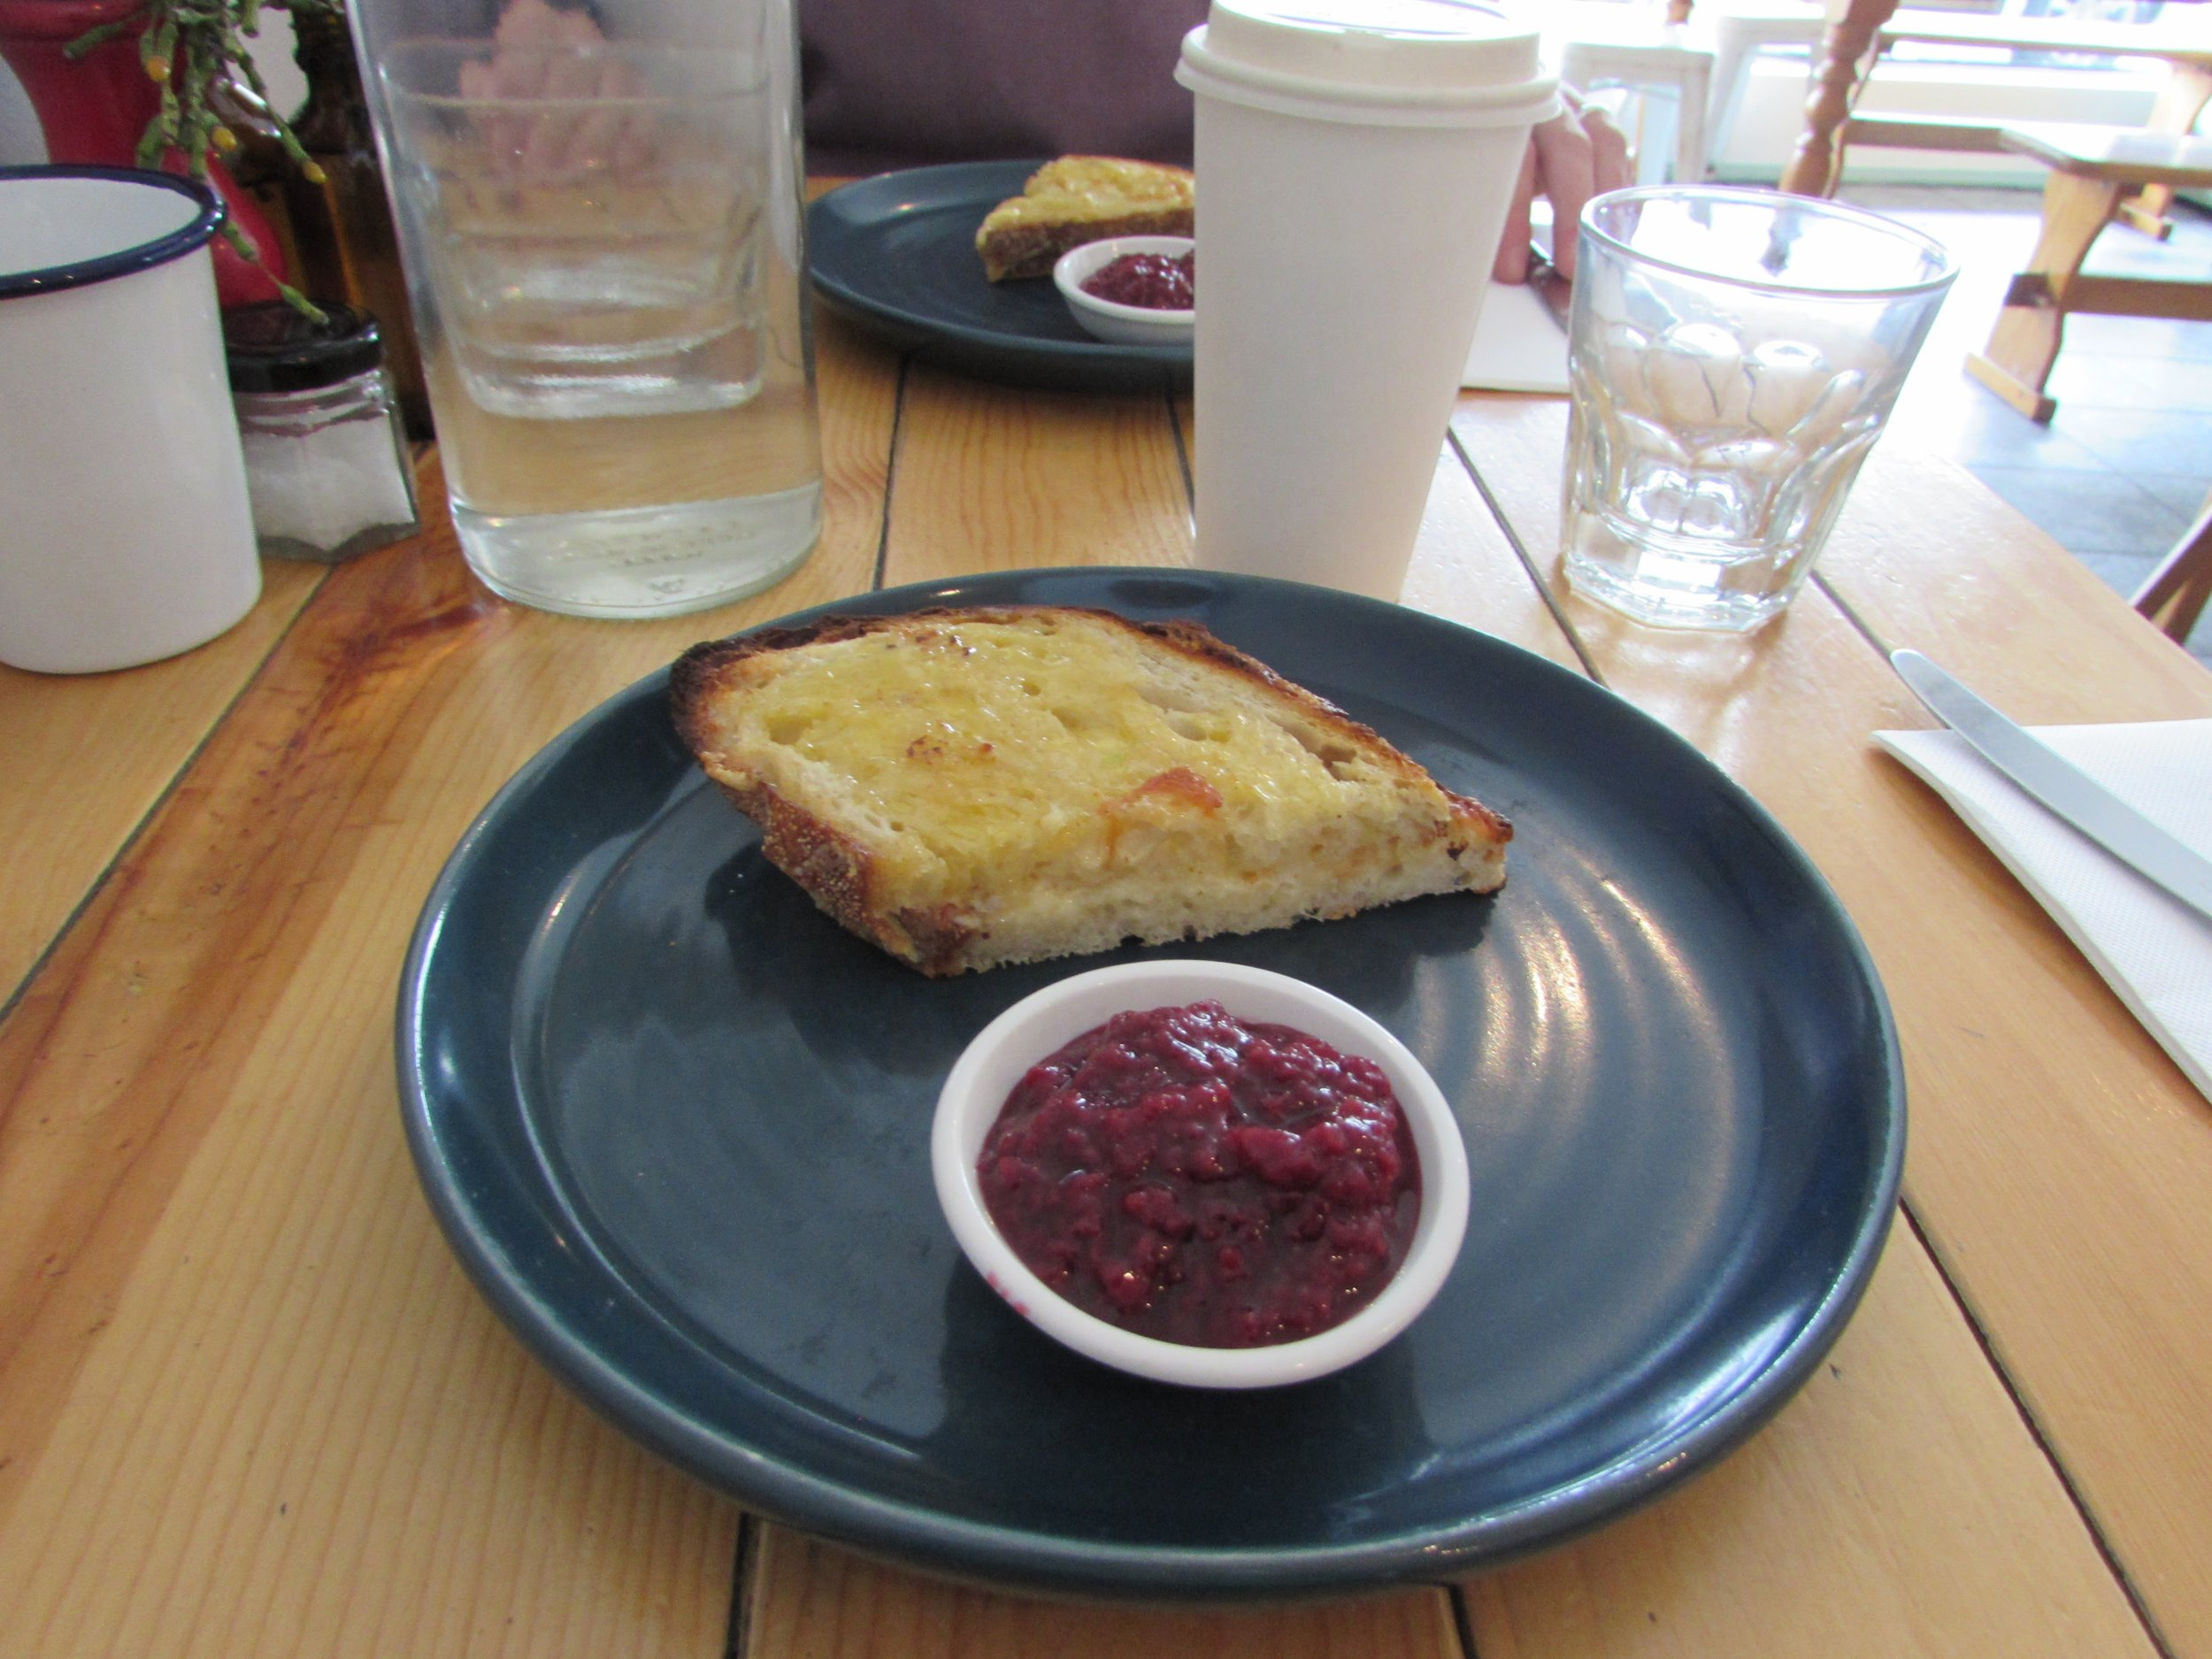 We ate the three-cheese toastie at Brother Alec  twice  while we were in Melbourne. The second time we split one and asked for a side of raspberry jam. Delicious combo, btw.